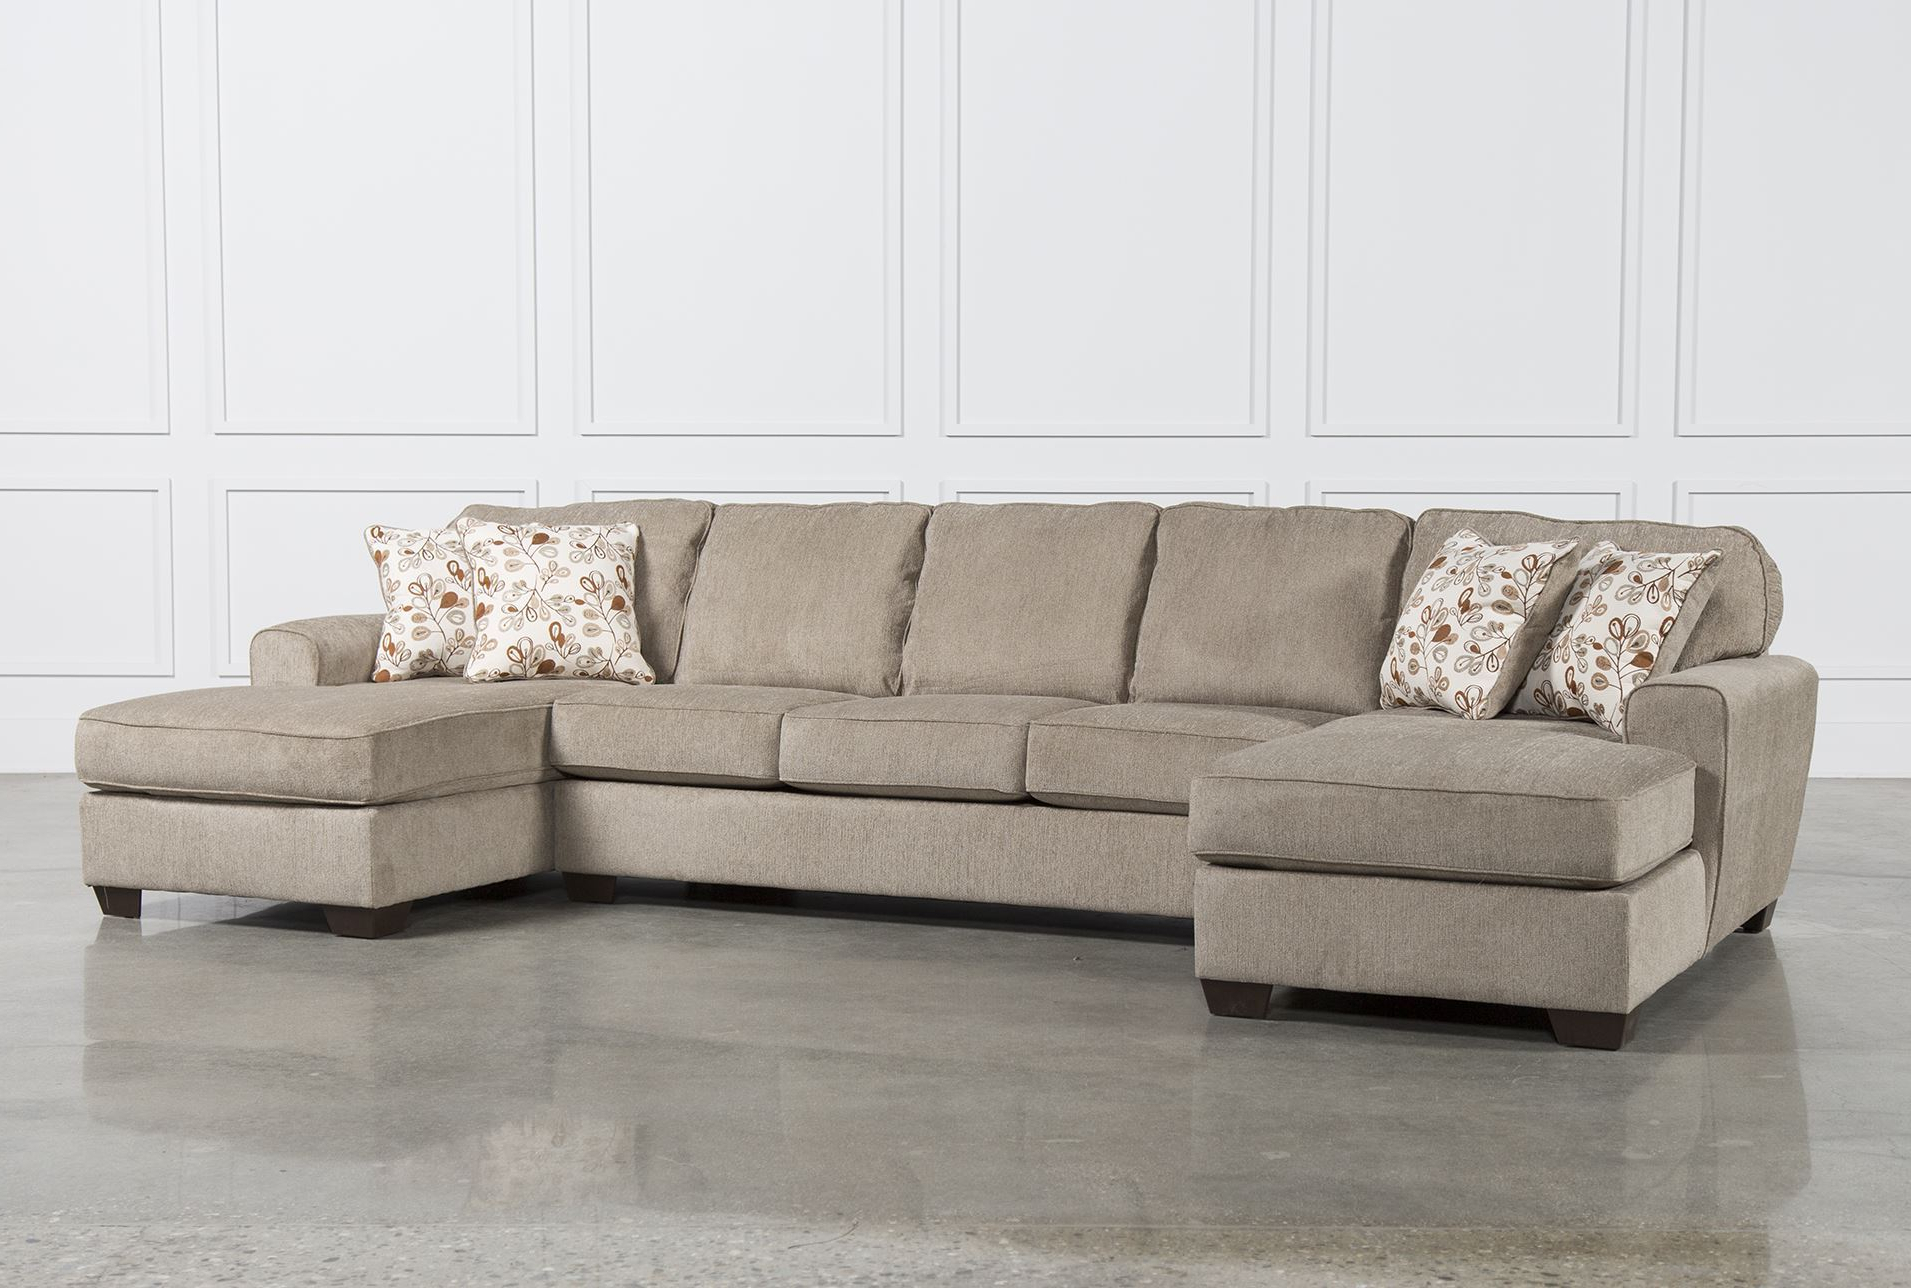 Most Popular Living Spaces Small Sectional Sofas – Sofa Design Ideas Inside Avery 2 Piece Sectionals With Raf Armless Chaise (View 16 of 20)